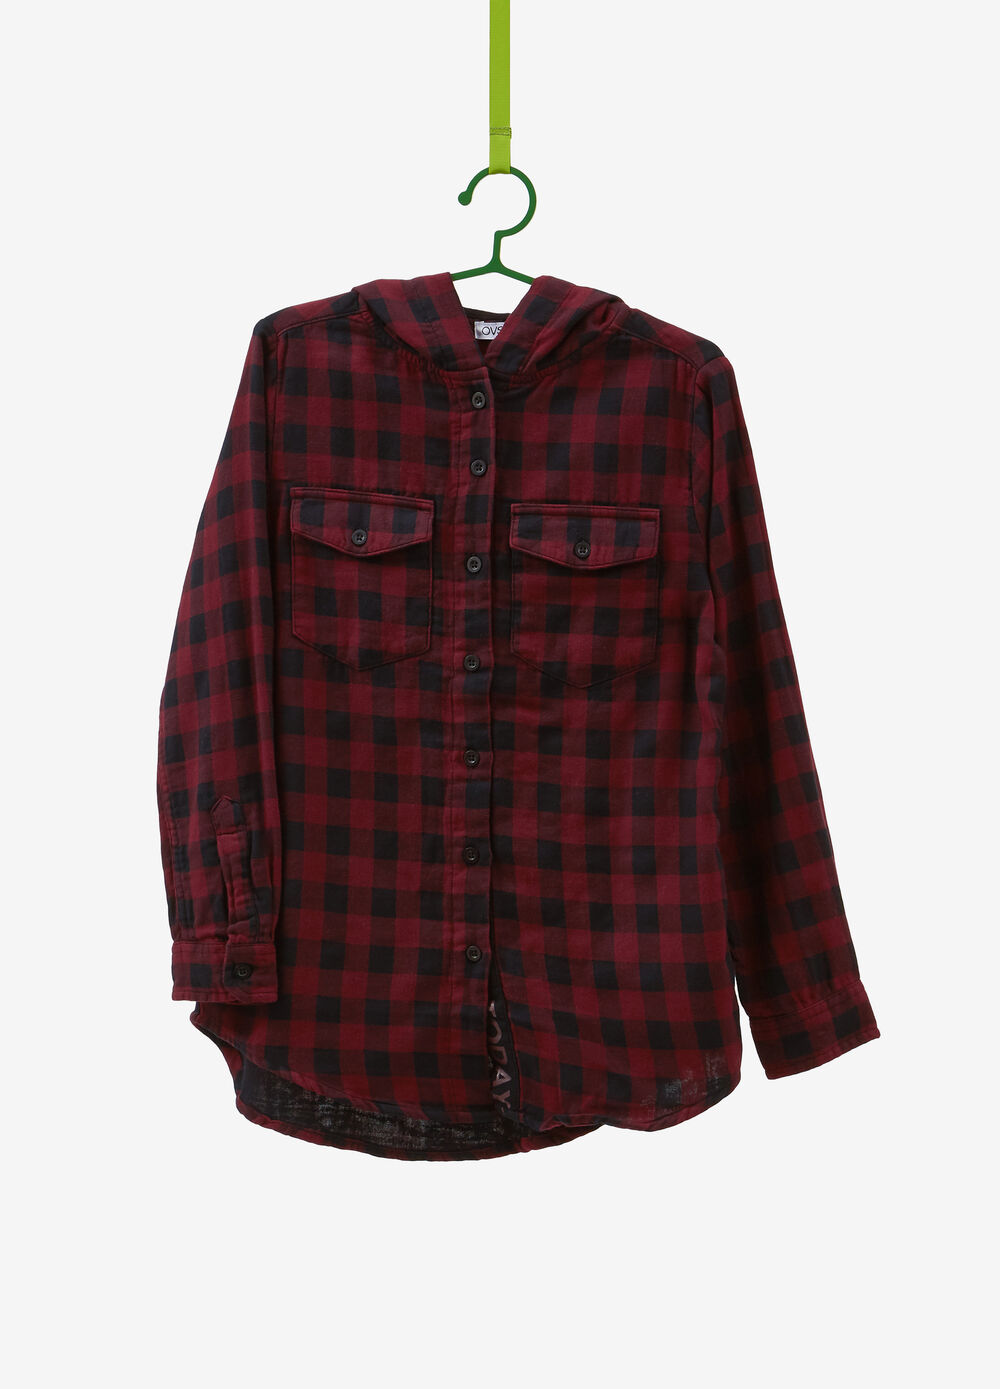 100% cotton check shirt with hood